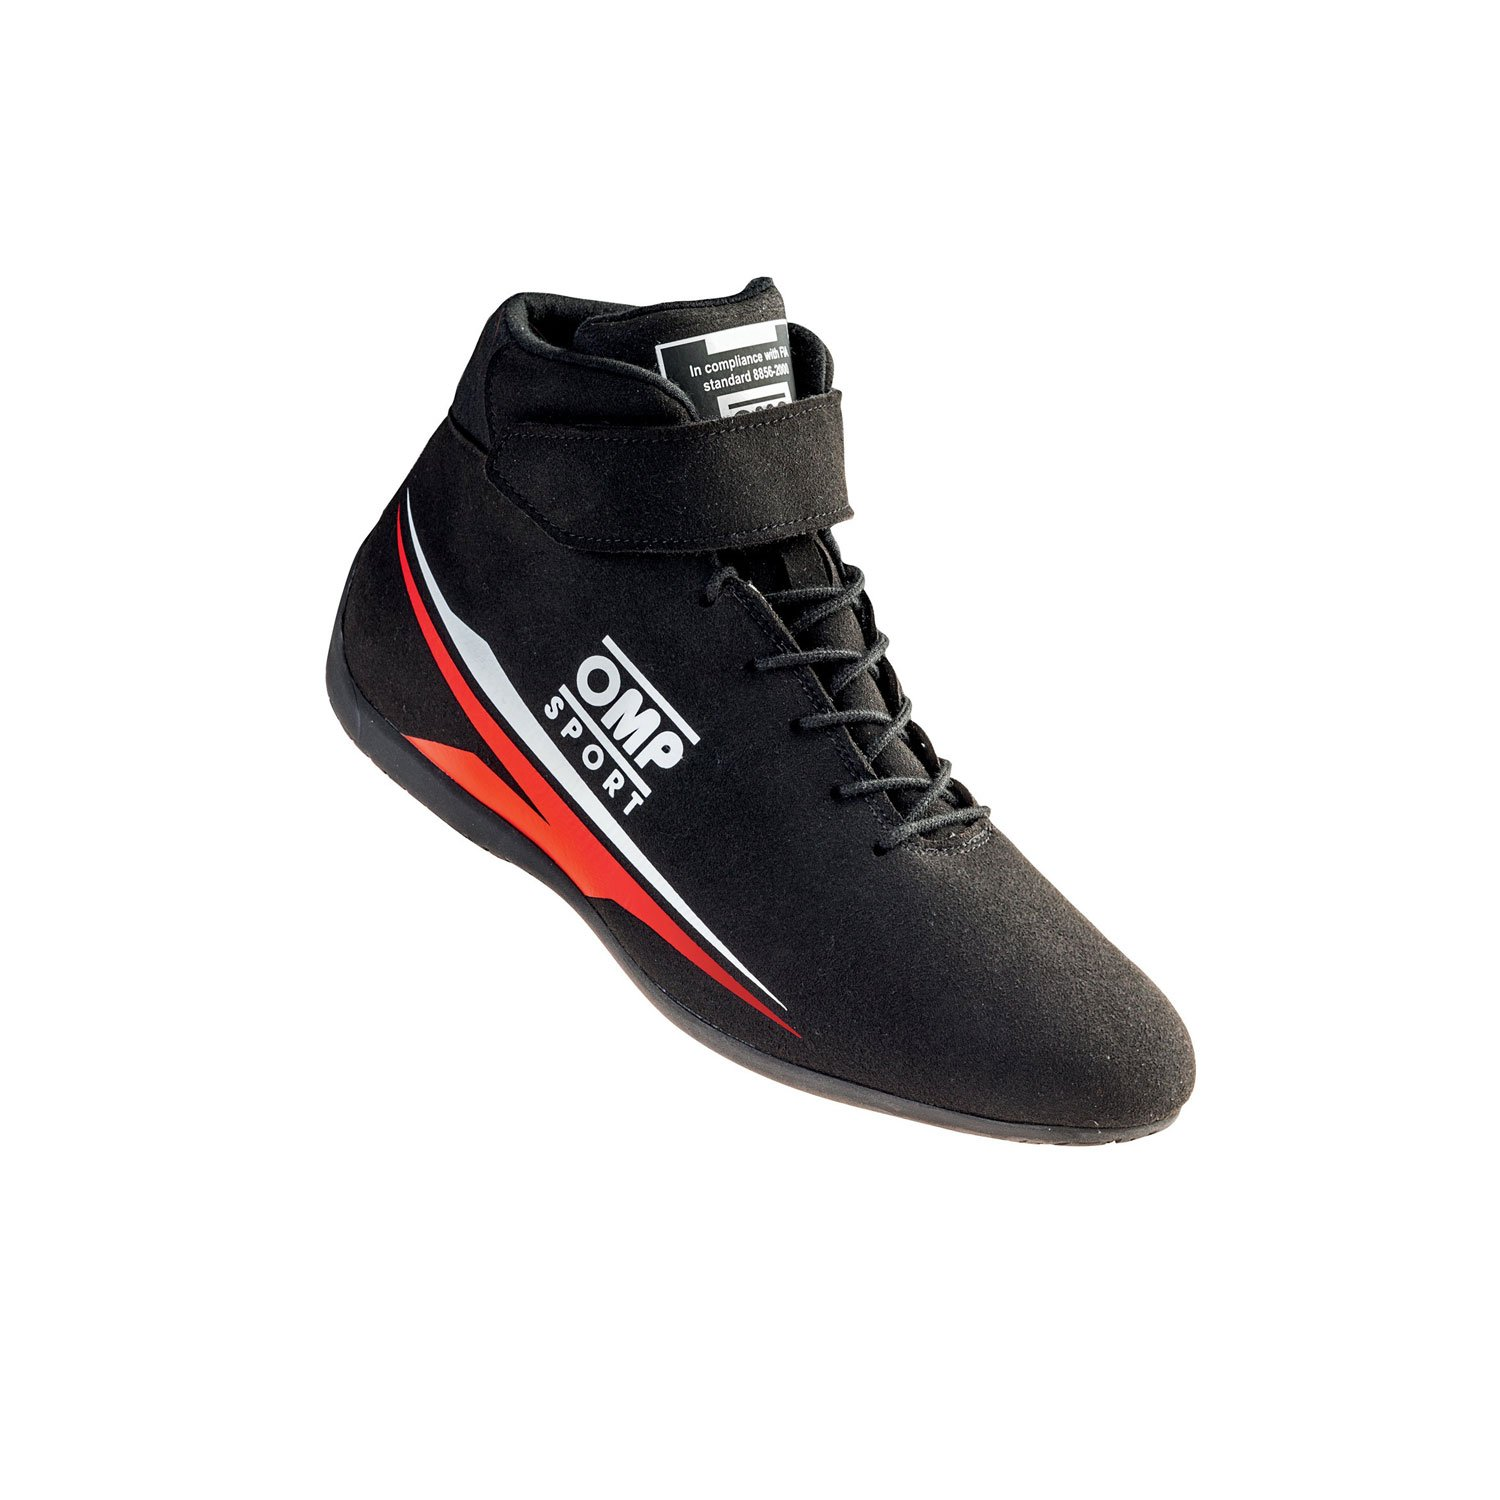 OMP Italy SPORT Black Racing Shoes (FIA)